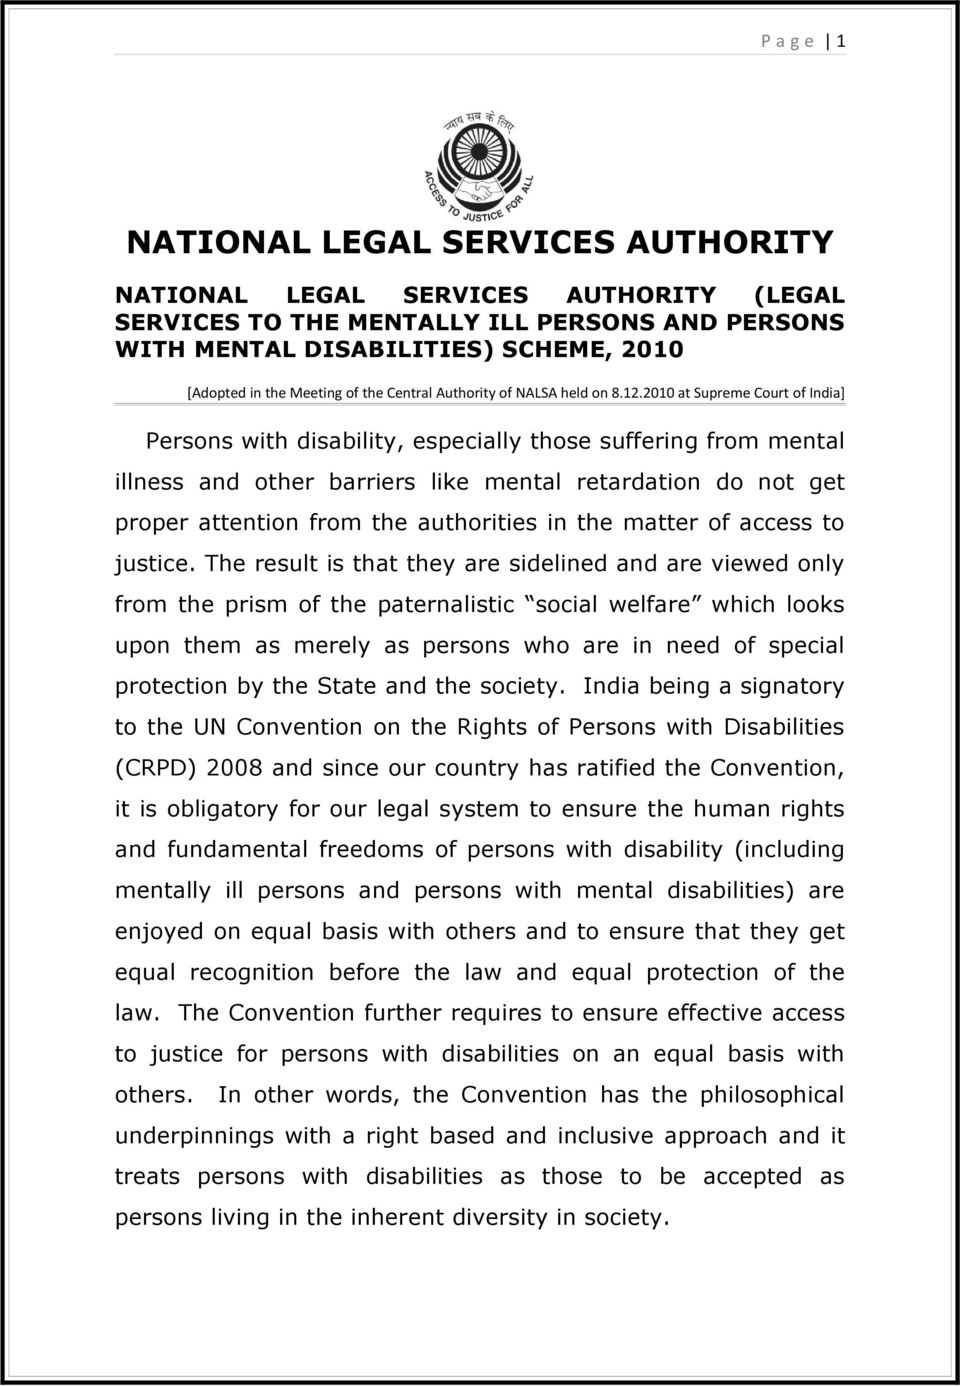 2010 at Supreme Court of India] Persons with disability, especially those suffering from mental illness and other barriers like mental retardation do not get proper attention from the authorities in